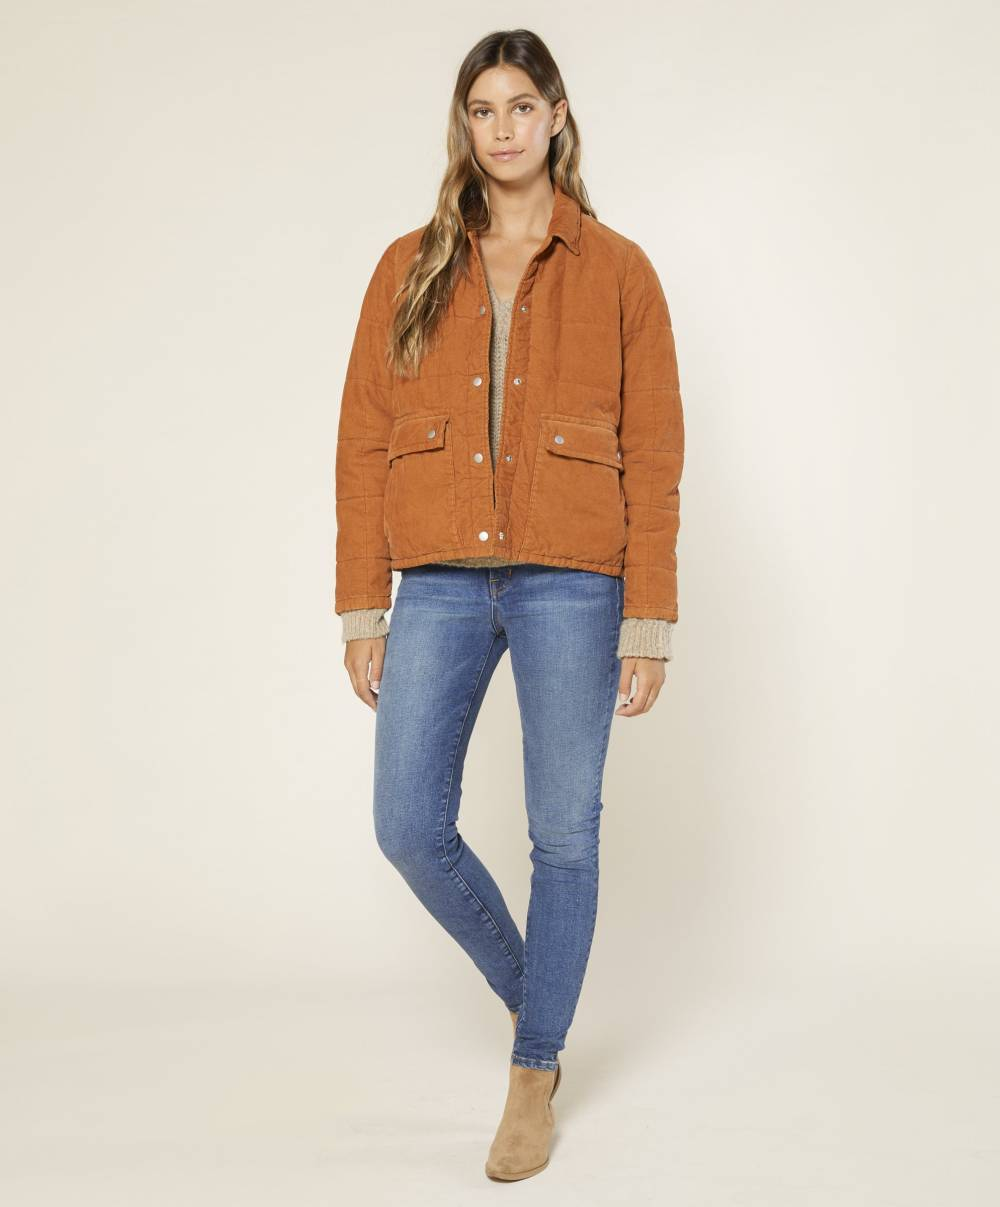 outerknown long lasting affordable puffers